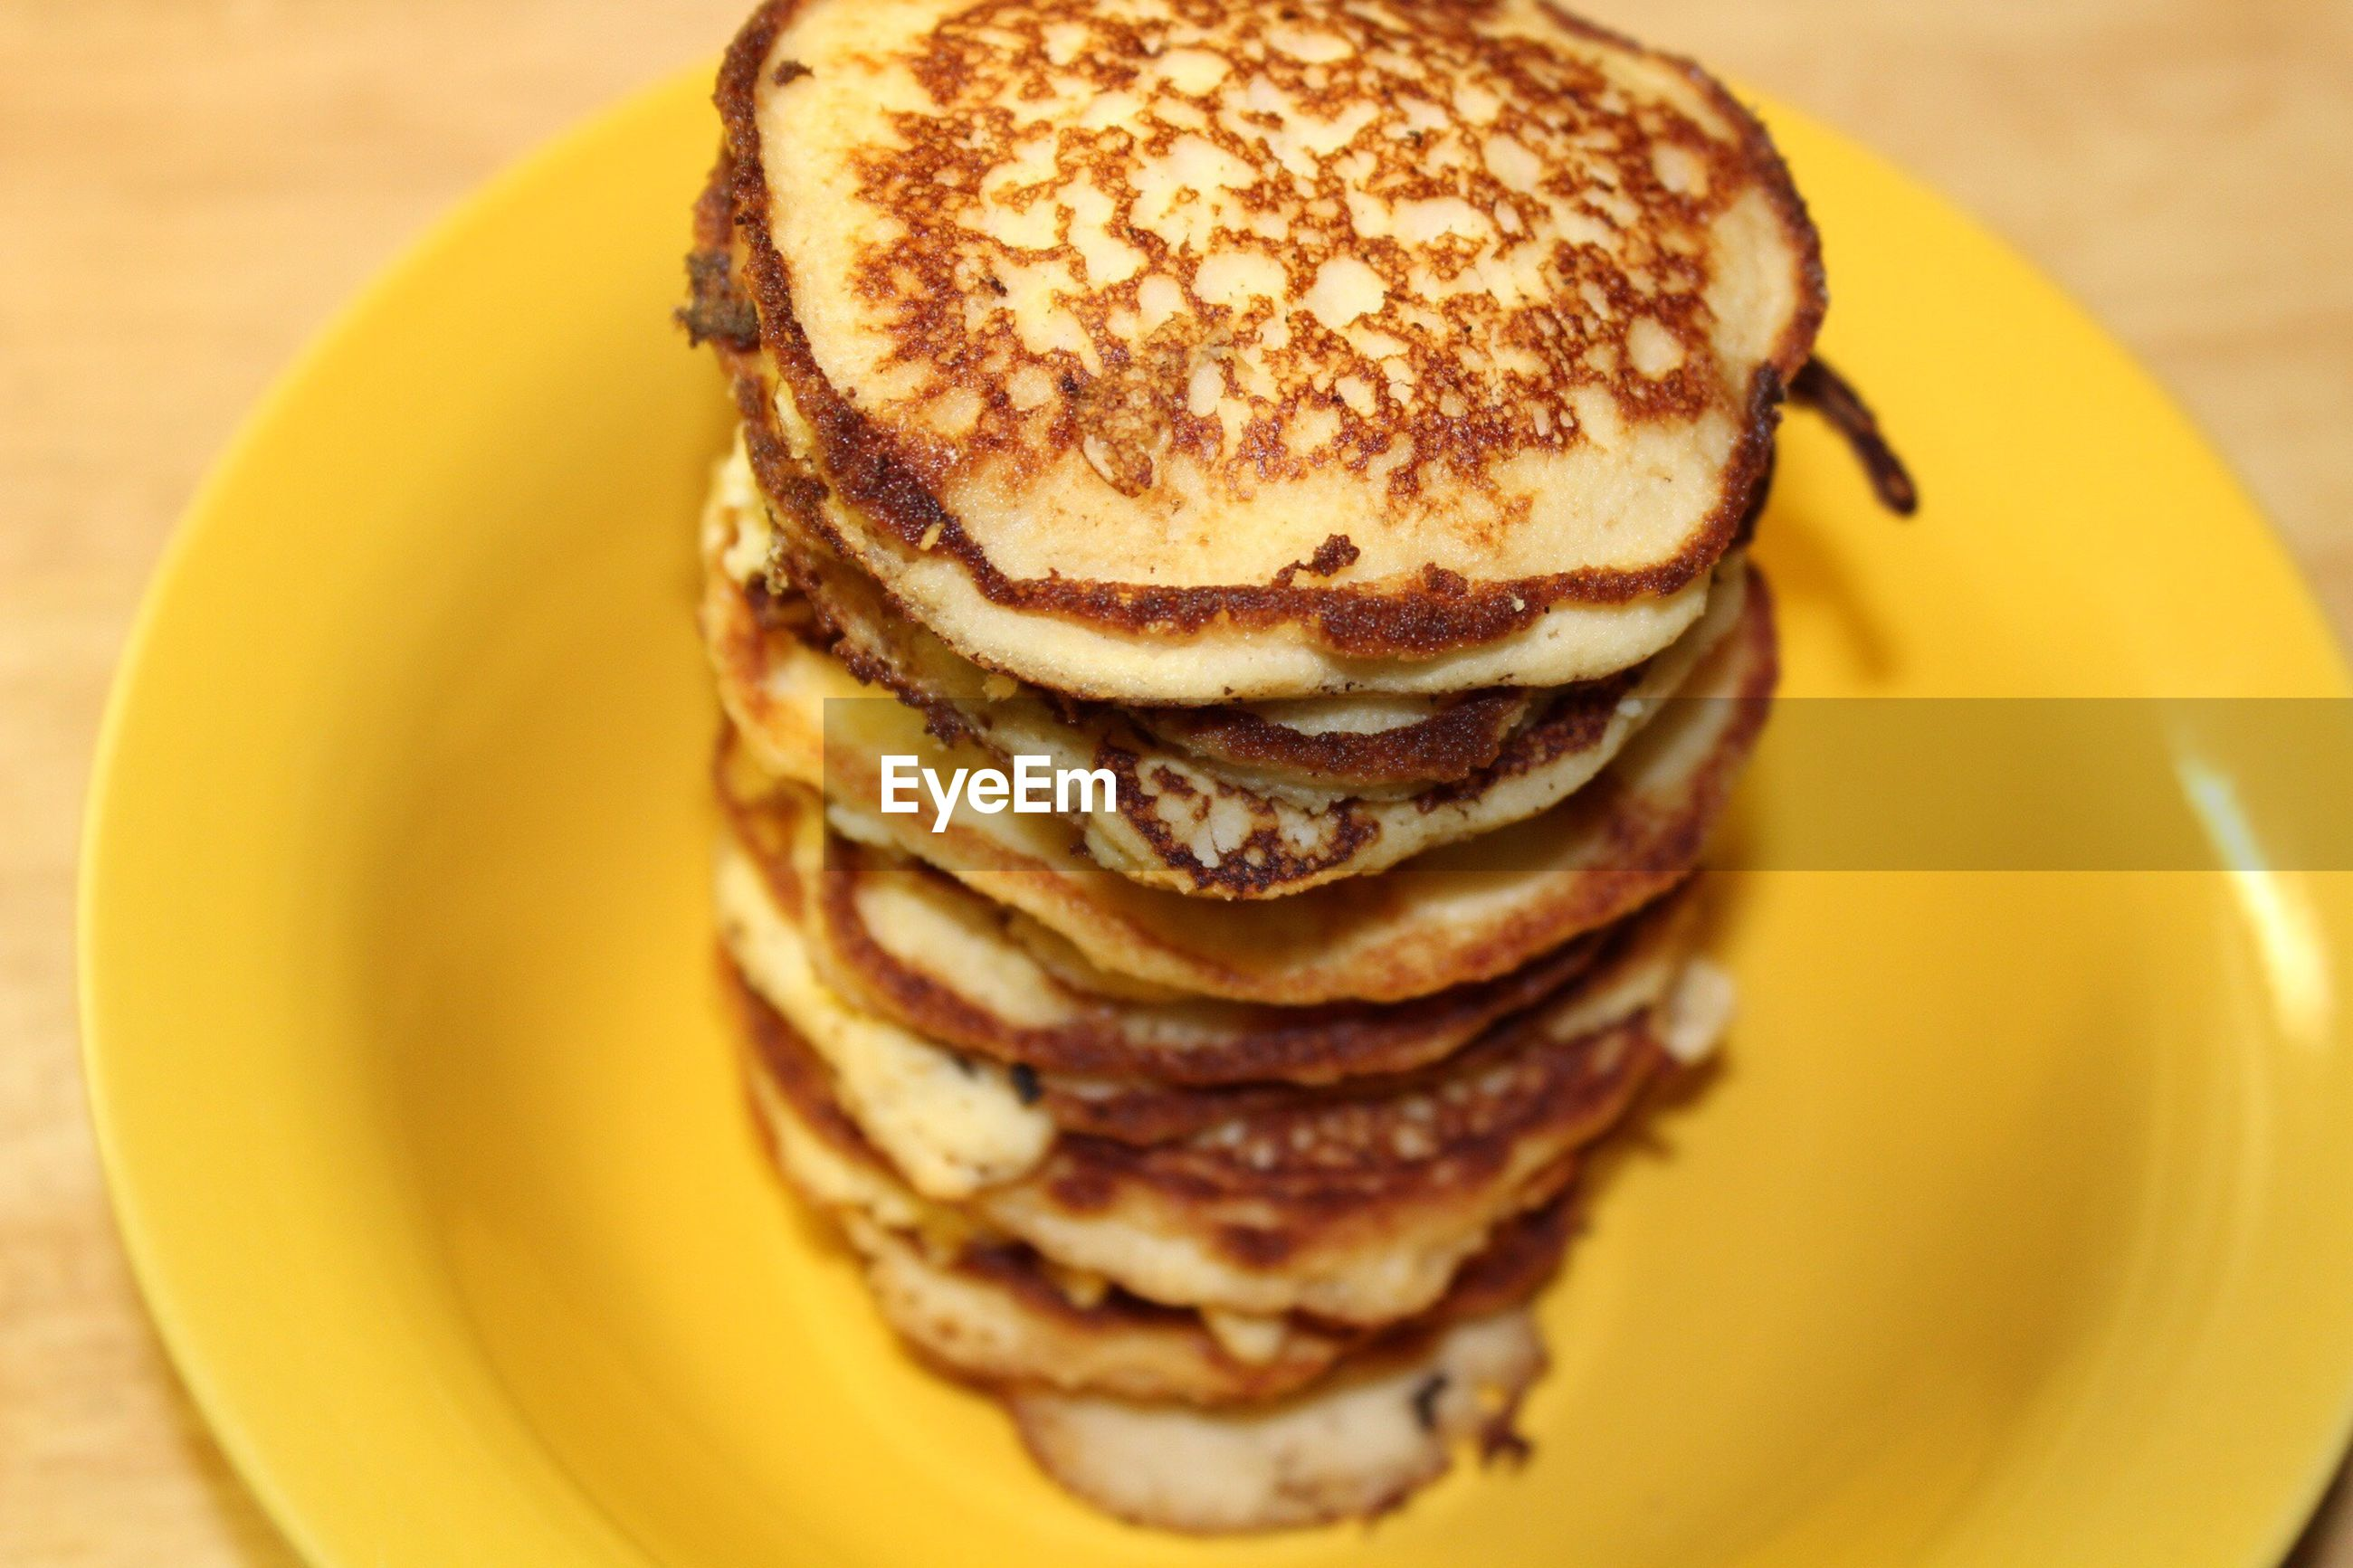 food and drink, food, stack, close-up, plate, freshness, pancake, bread, sweet food, indoors, yellow, no people, ready-to-eat, day